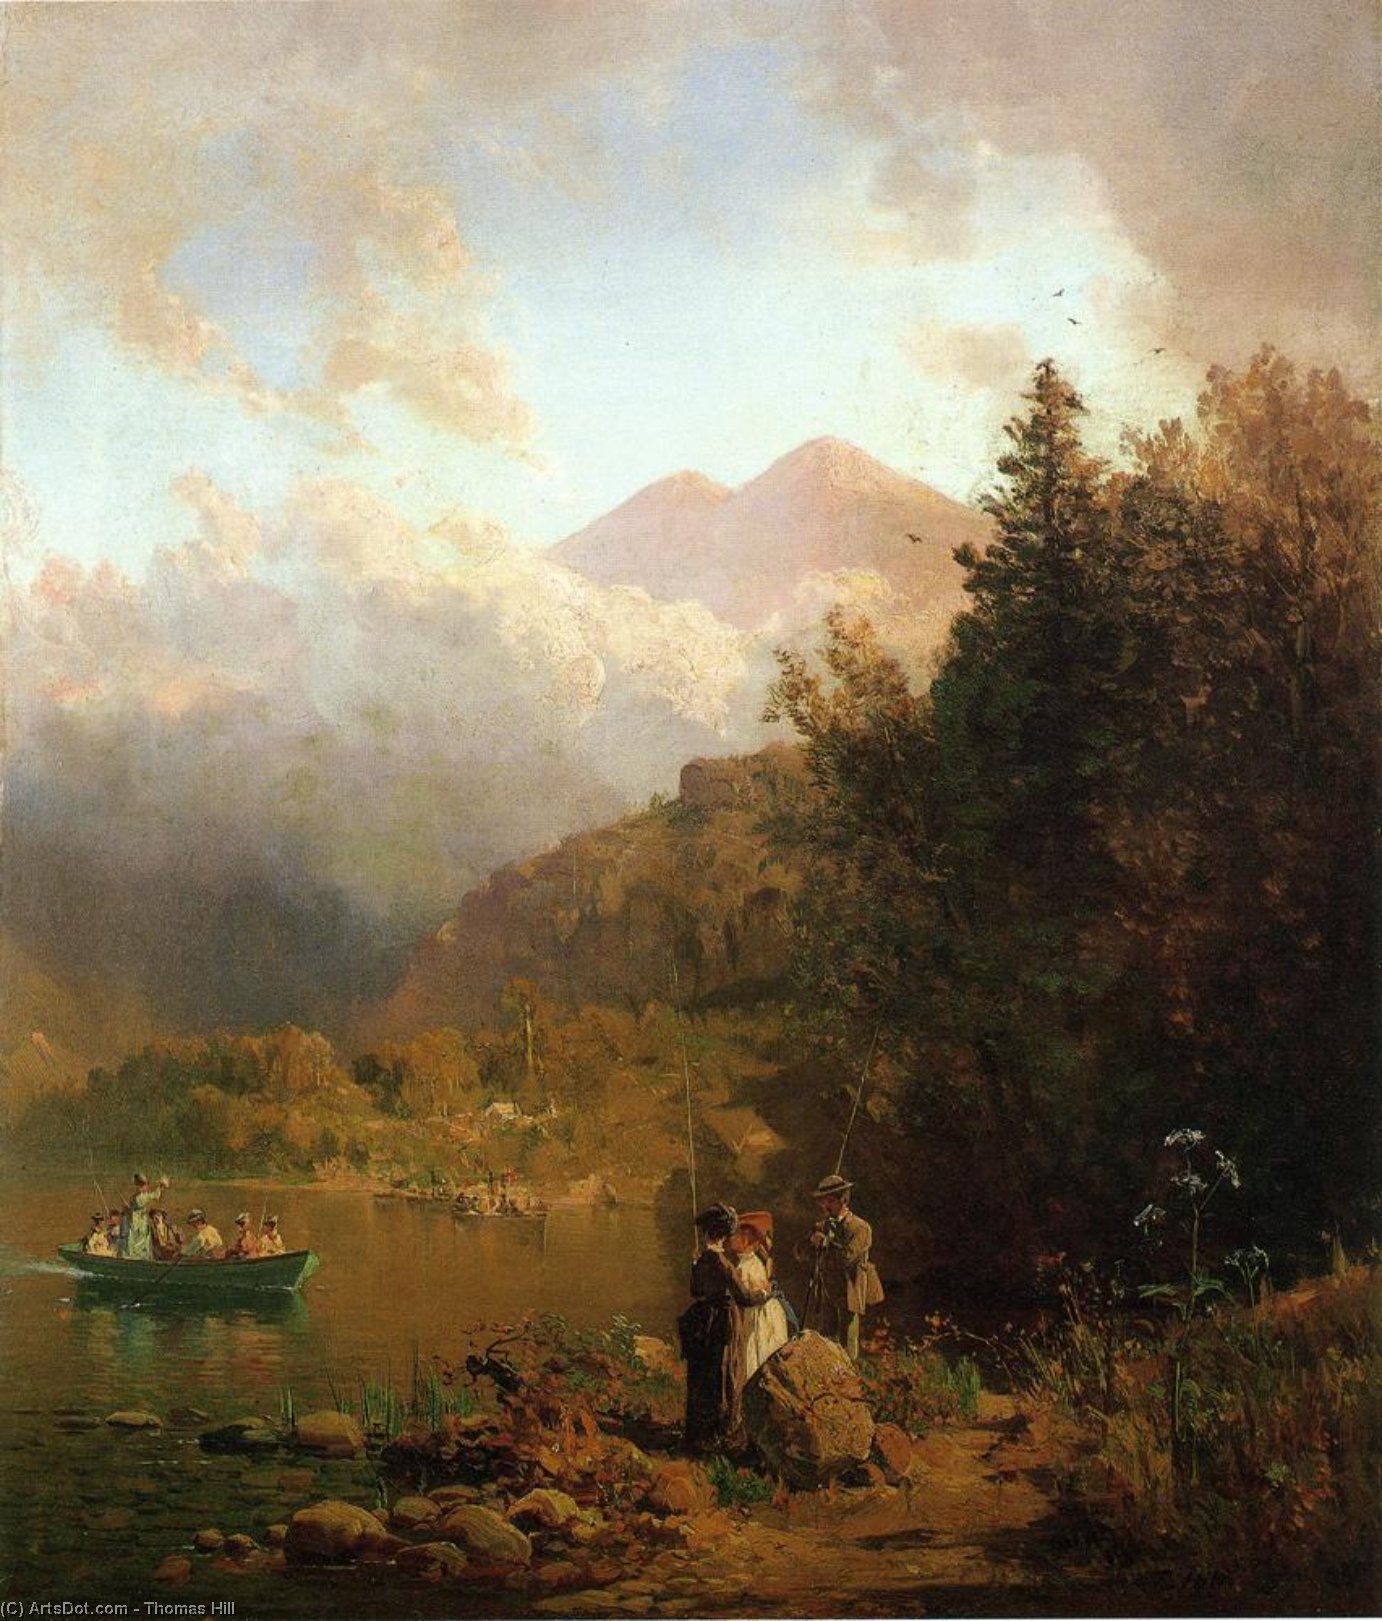 Fishing Party in the Mountains, Oil On Canvas by Thomas Hill (1829-1908, United Kingdom)